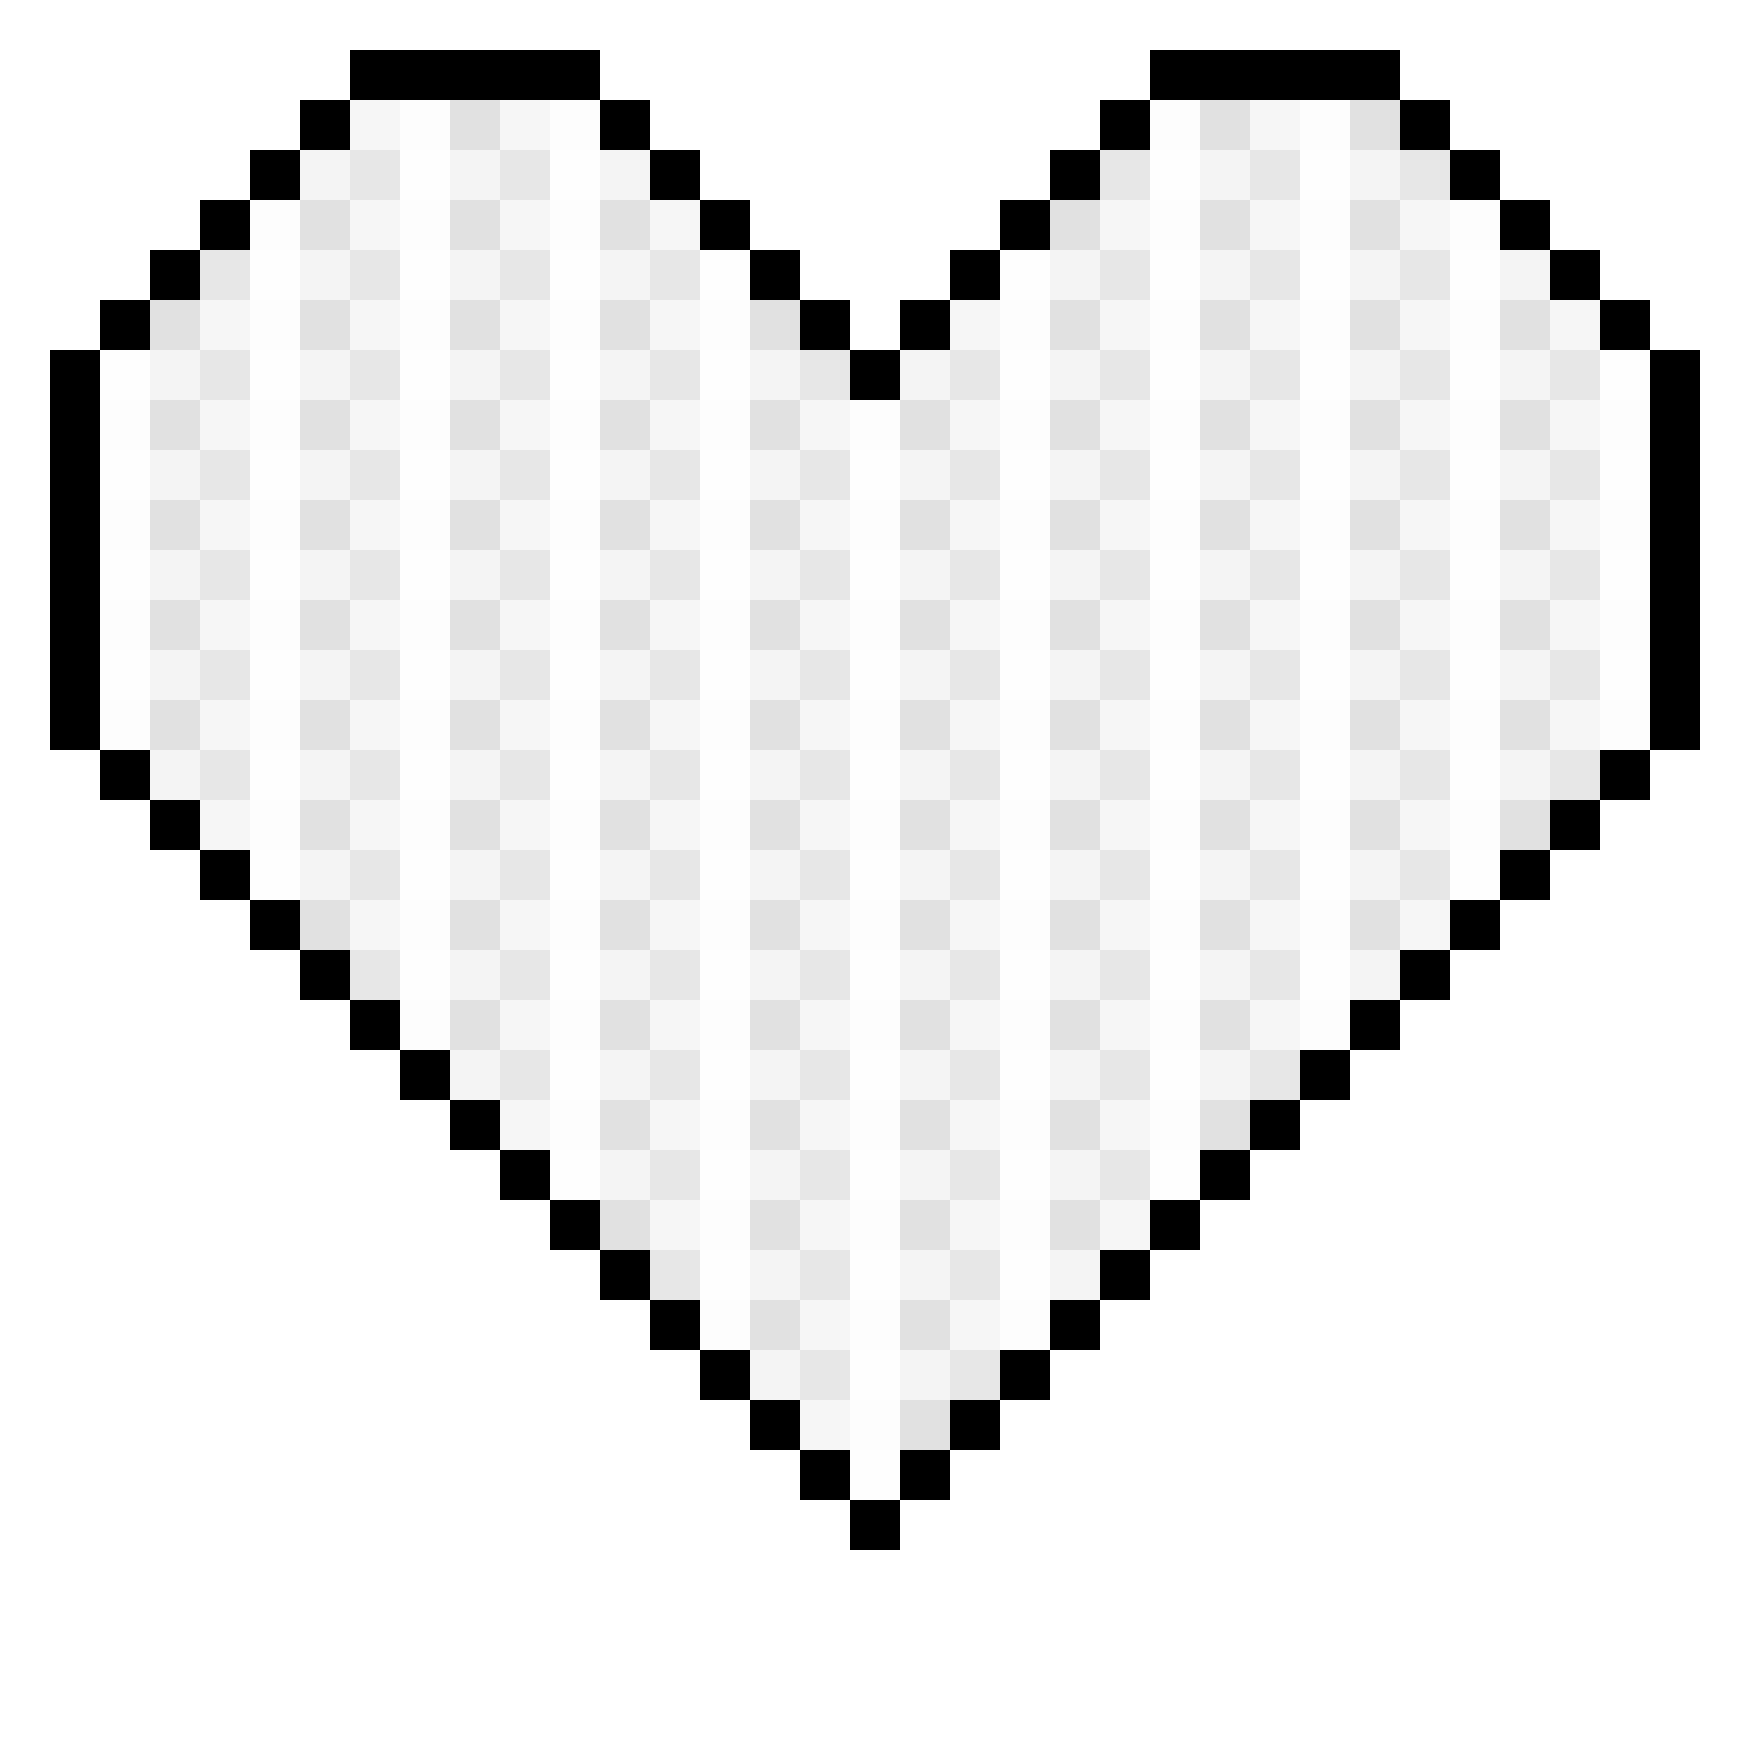 Heart banner clipart jpg transparent stock Pixel Art Heart Clipart jpg transparent stock